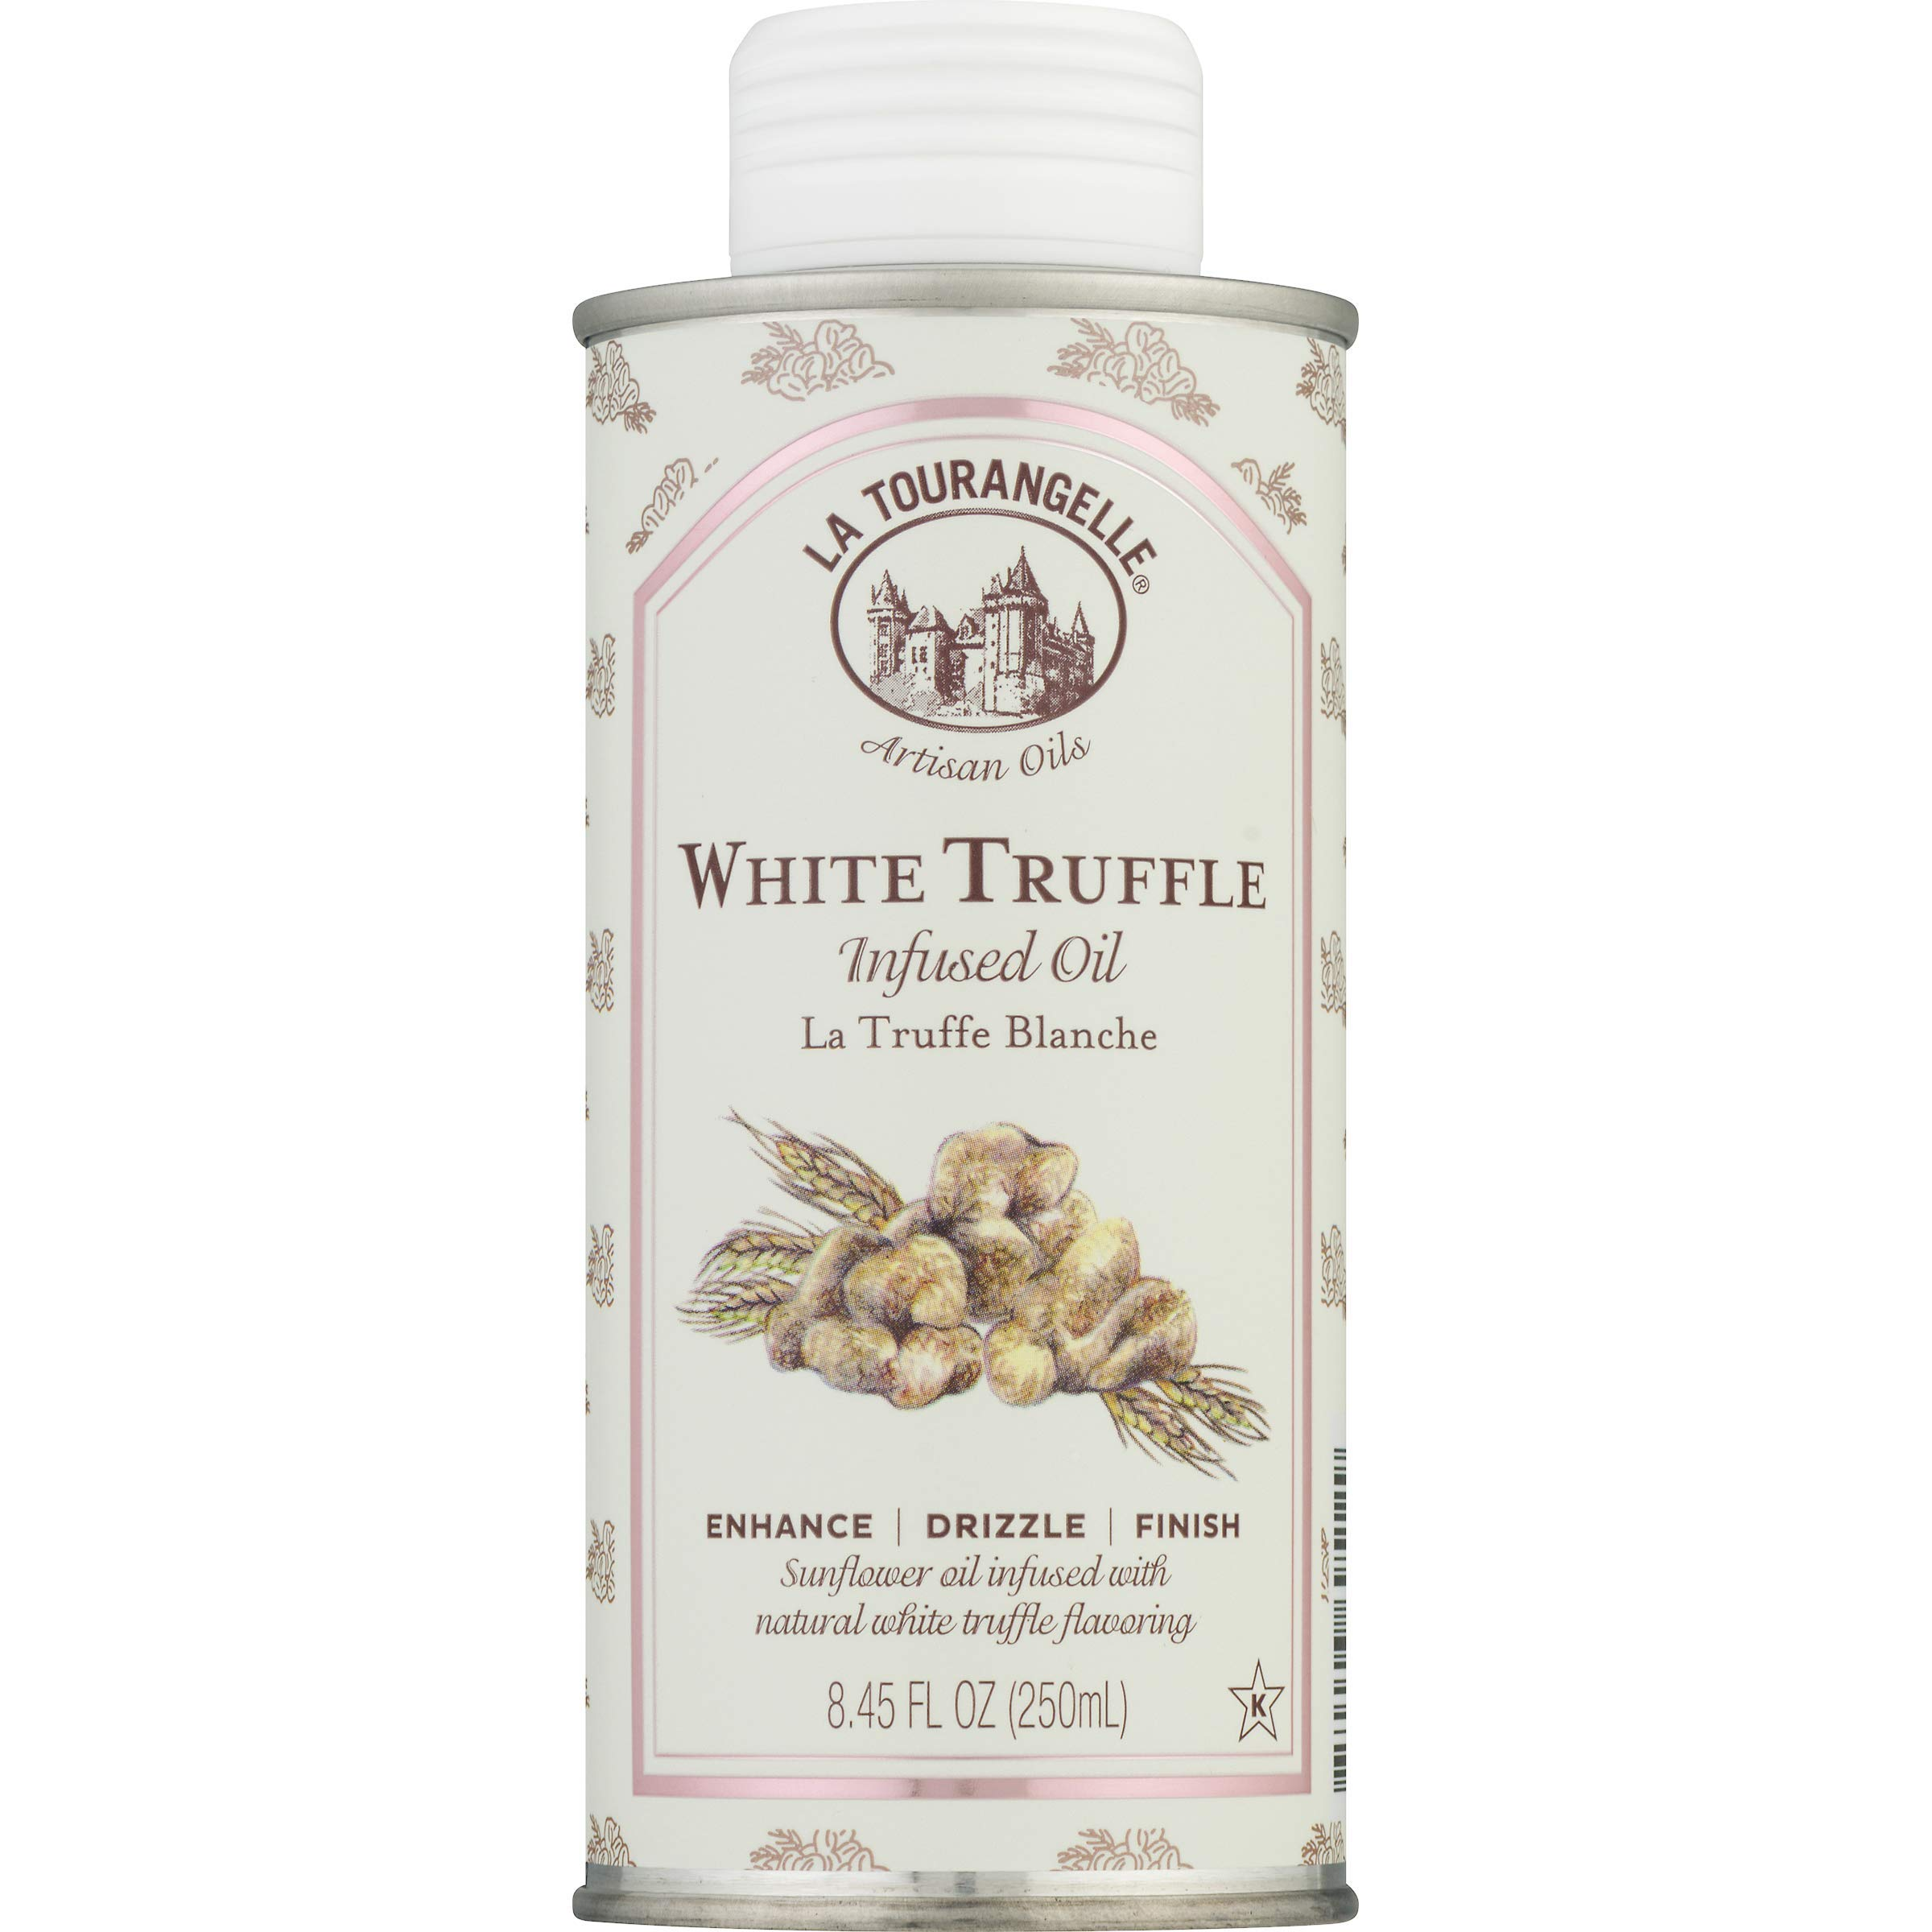 La Tourangelle White Truffle Infused Oil, Earthy & Bold Blend With Real Truffle Extract & Sunflower Seed Oil, 8.45 Oz by La Tourangelle